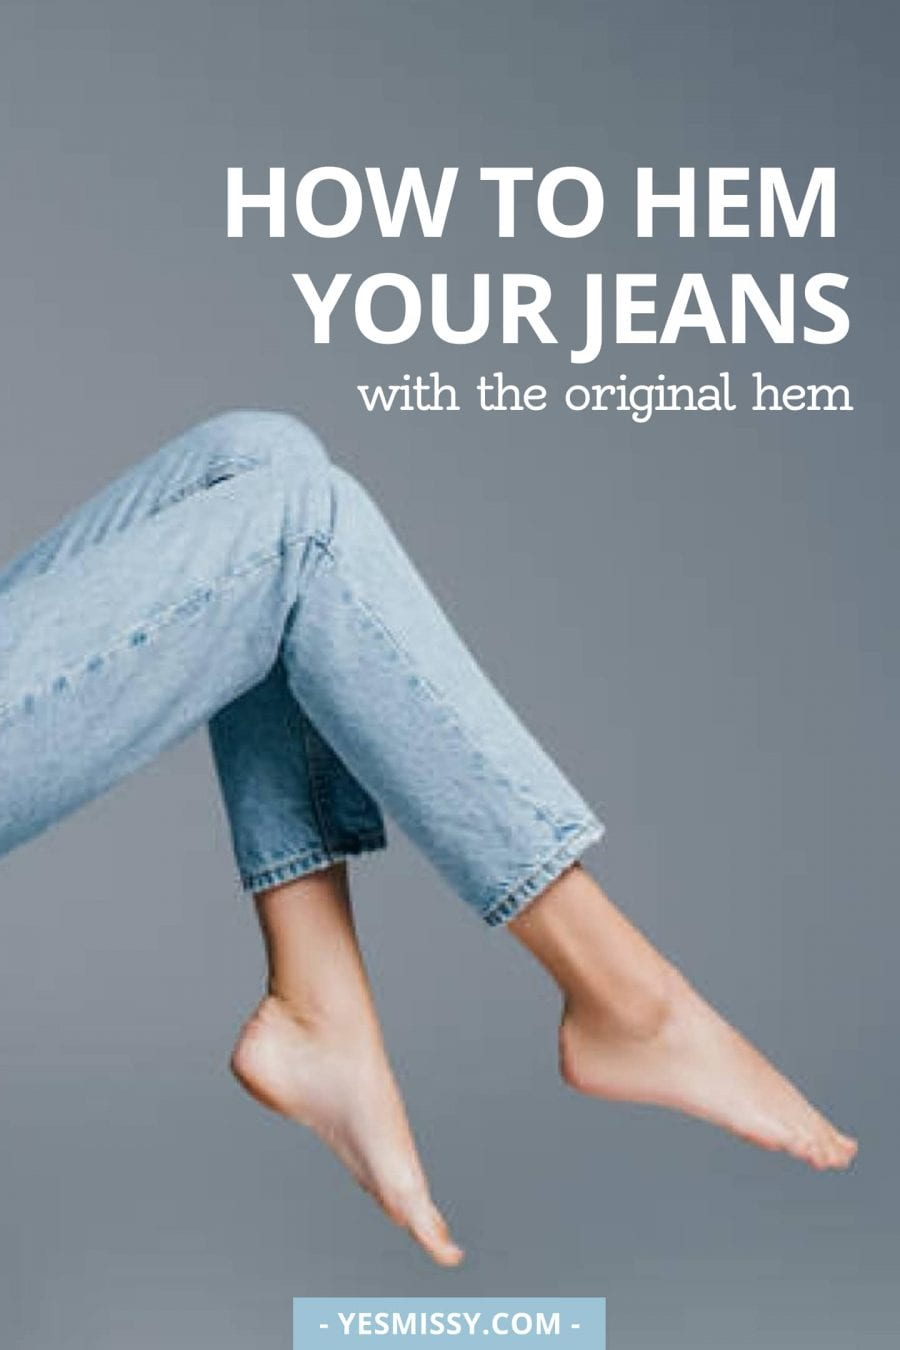 DIY: a guide on how to hem jeans with the original hem.